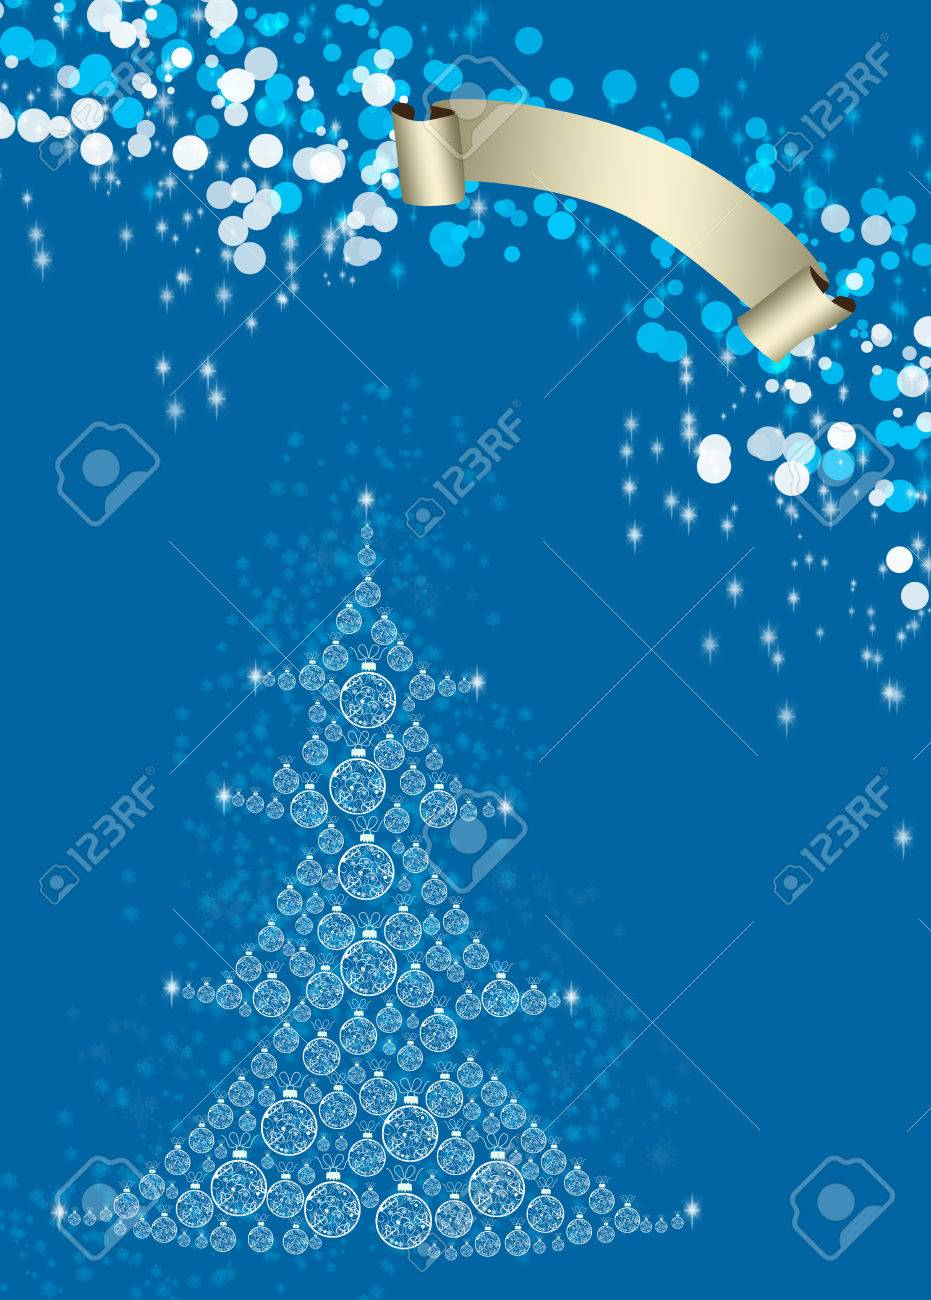 merry christmas decoration poster or flyer background space merry christmas decoration poster or flyer background space stock photo 24038186